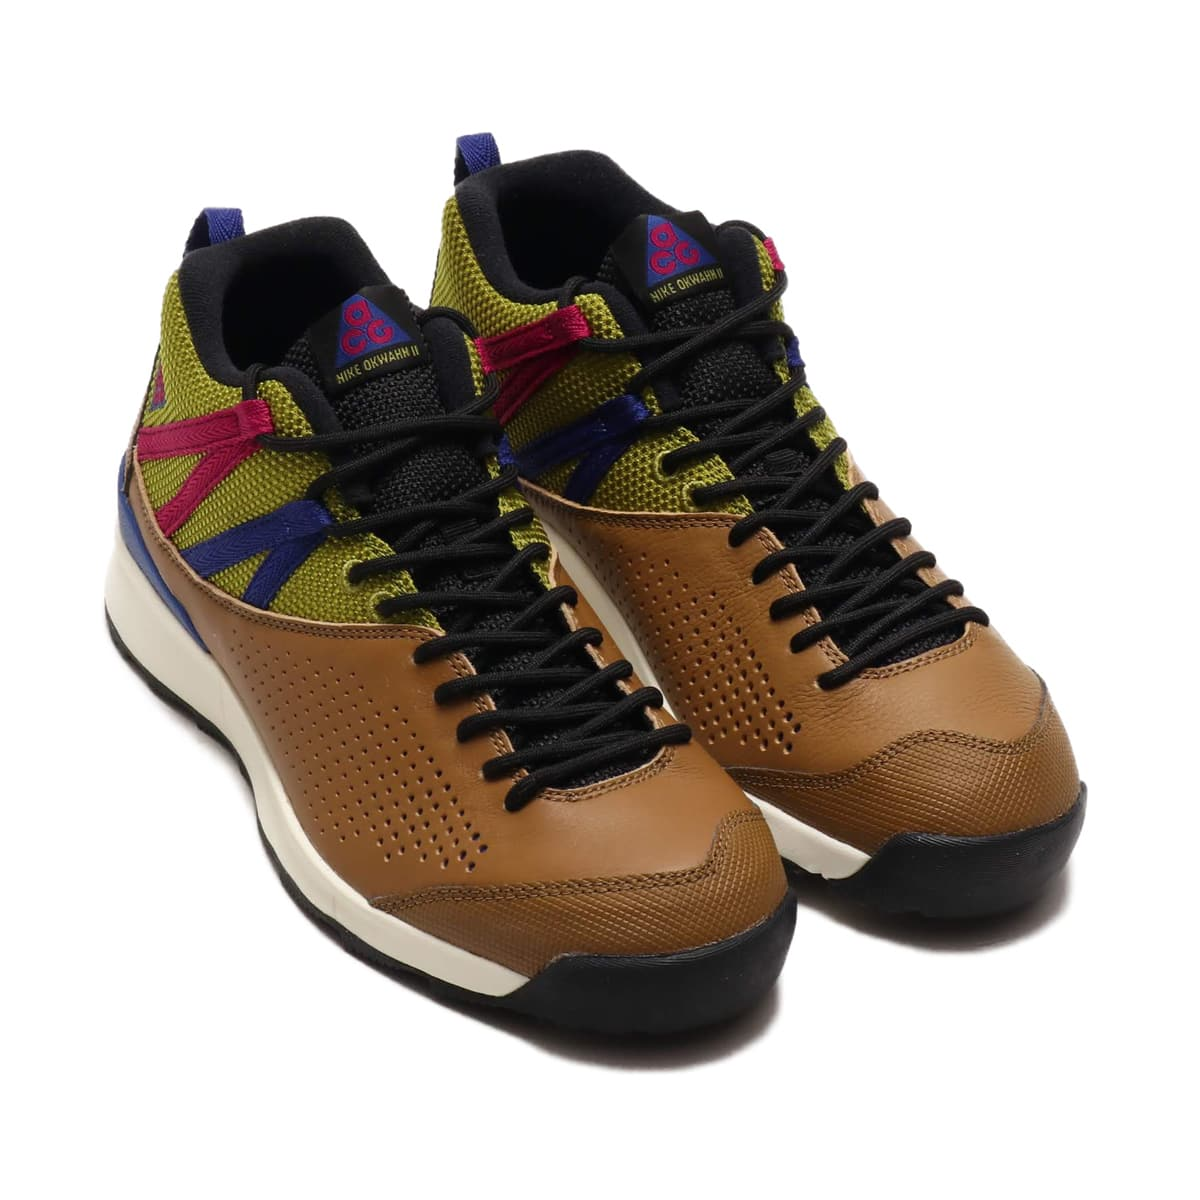 NIKE OKWAHN II GOLDEN BEIGE/DEEP ROYAL BLUE-TRUE BERRY 19SU-S_photo_large